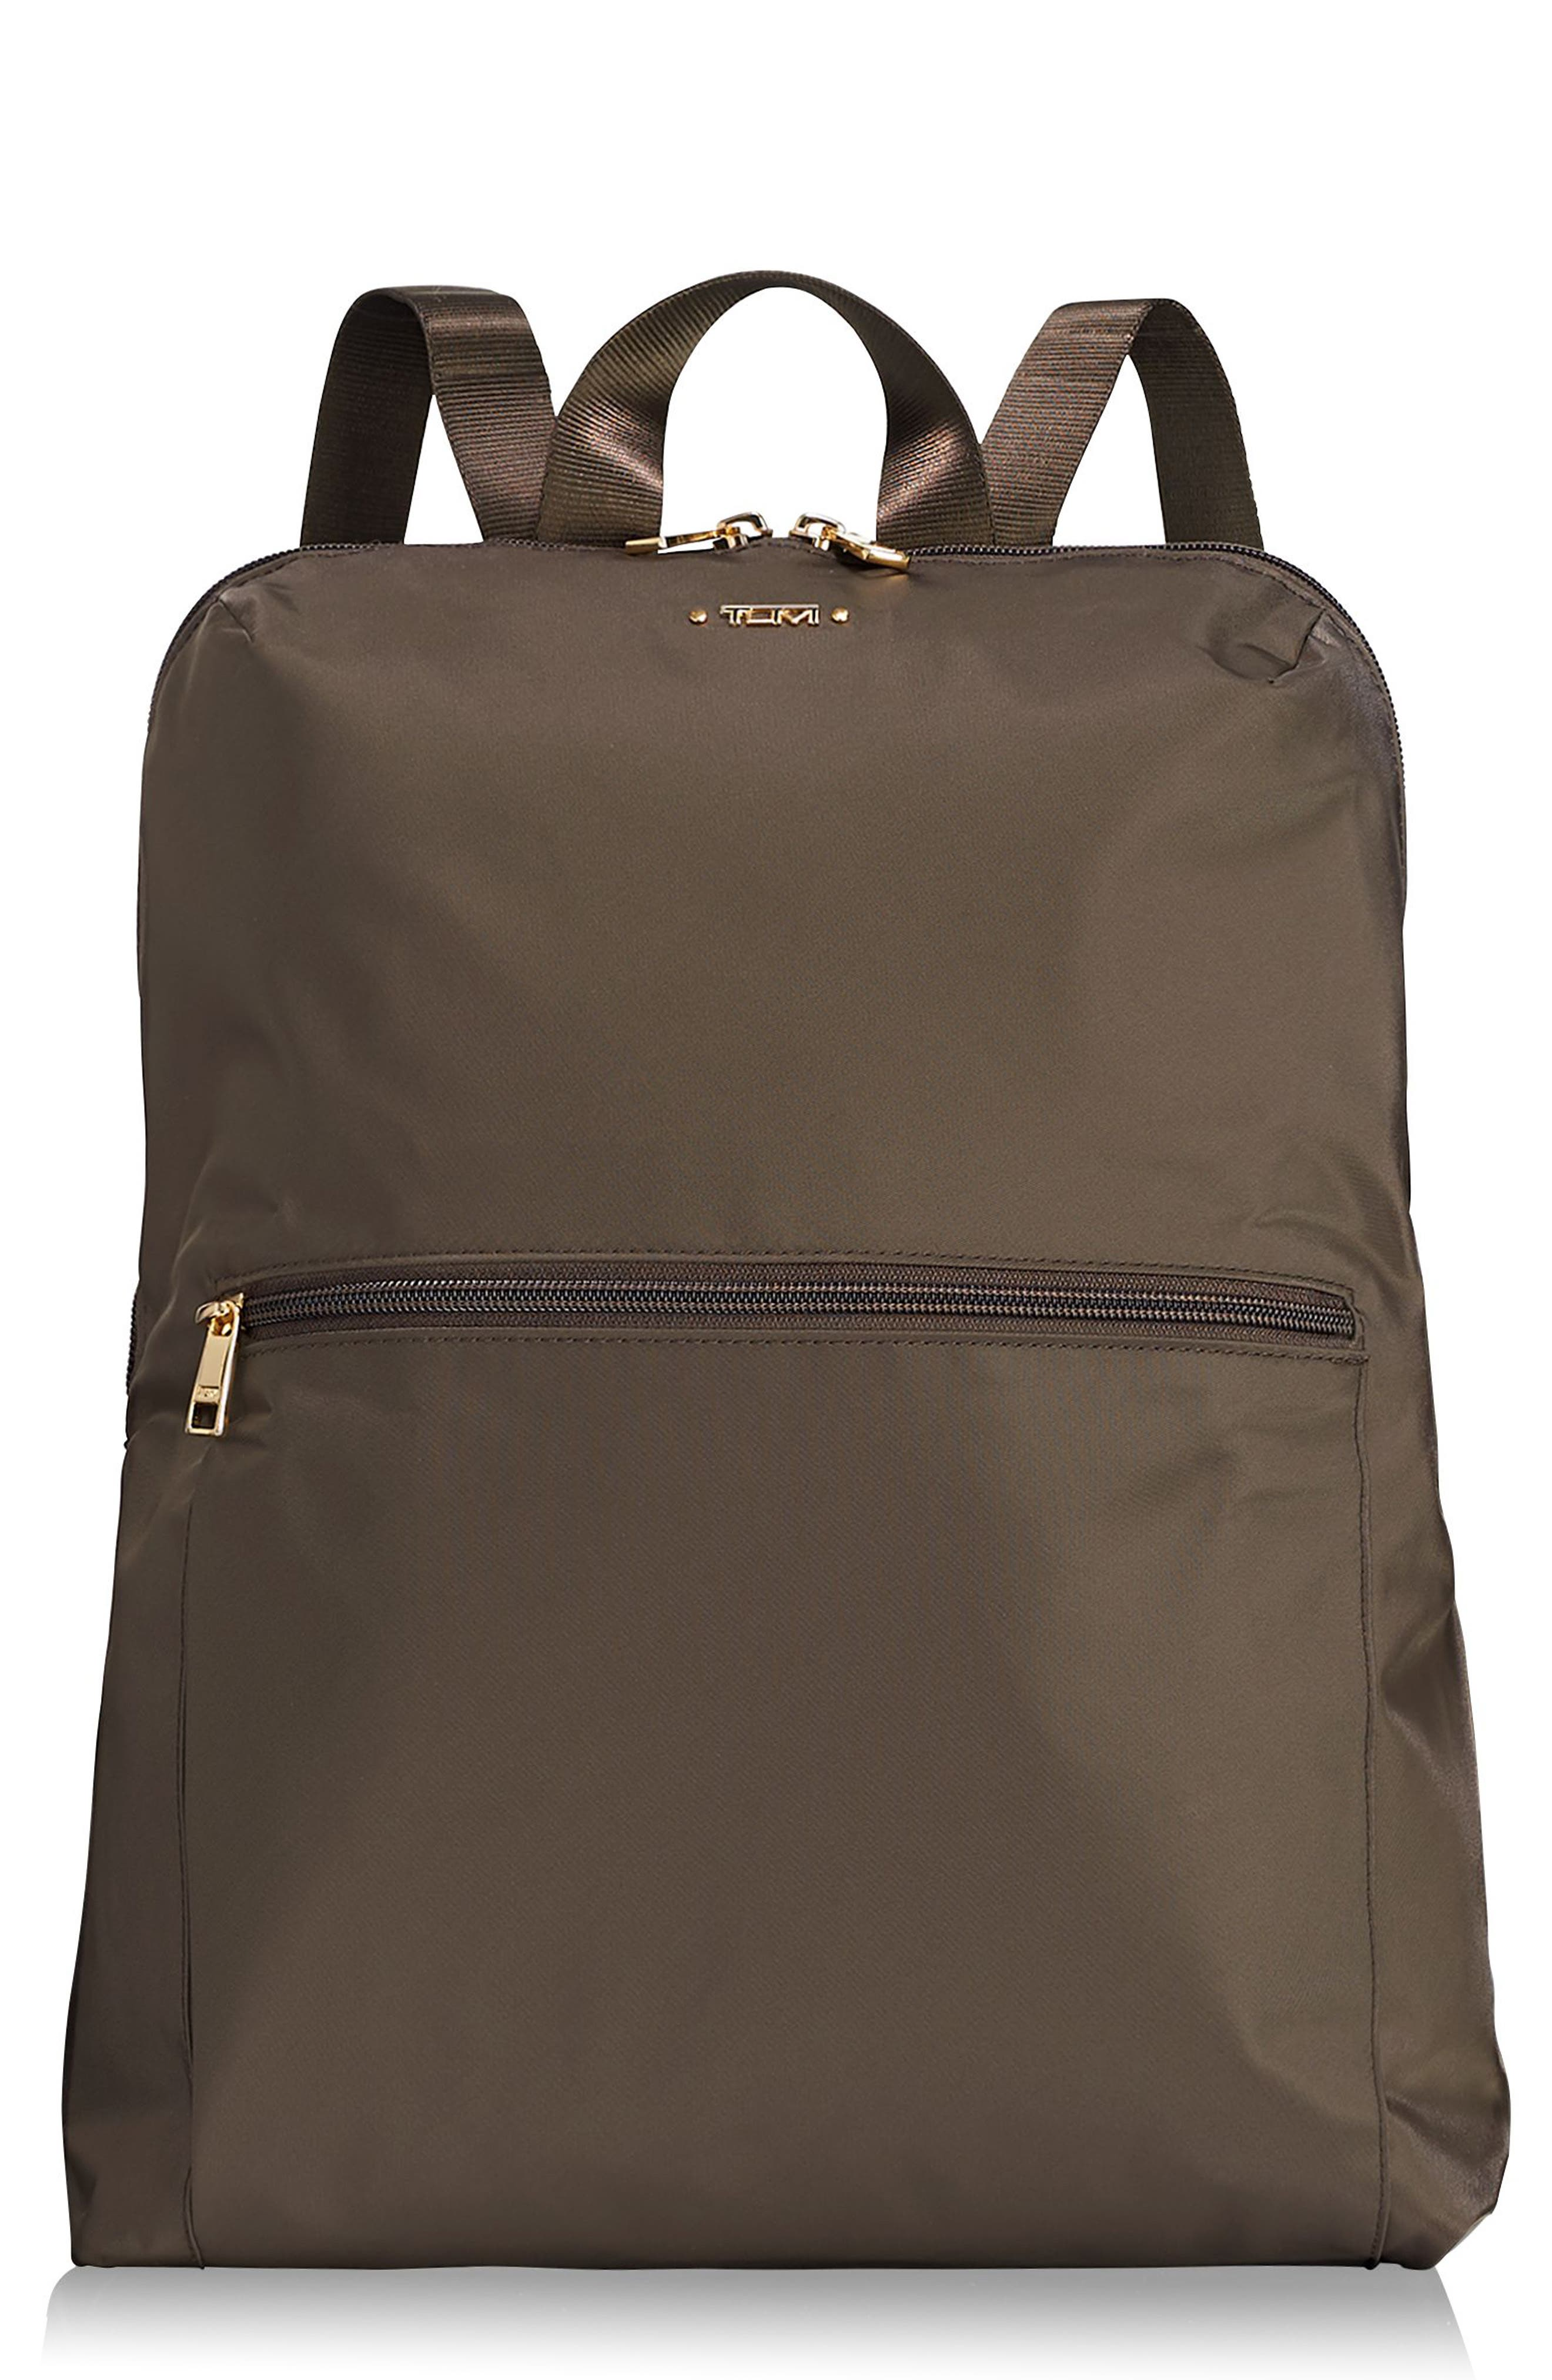 TUMI, Voyageur - Just in Case Nylon Travel Backpack, Main thumbnail 1, color, MINK